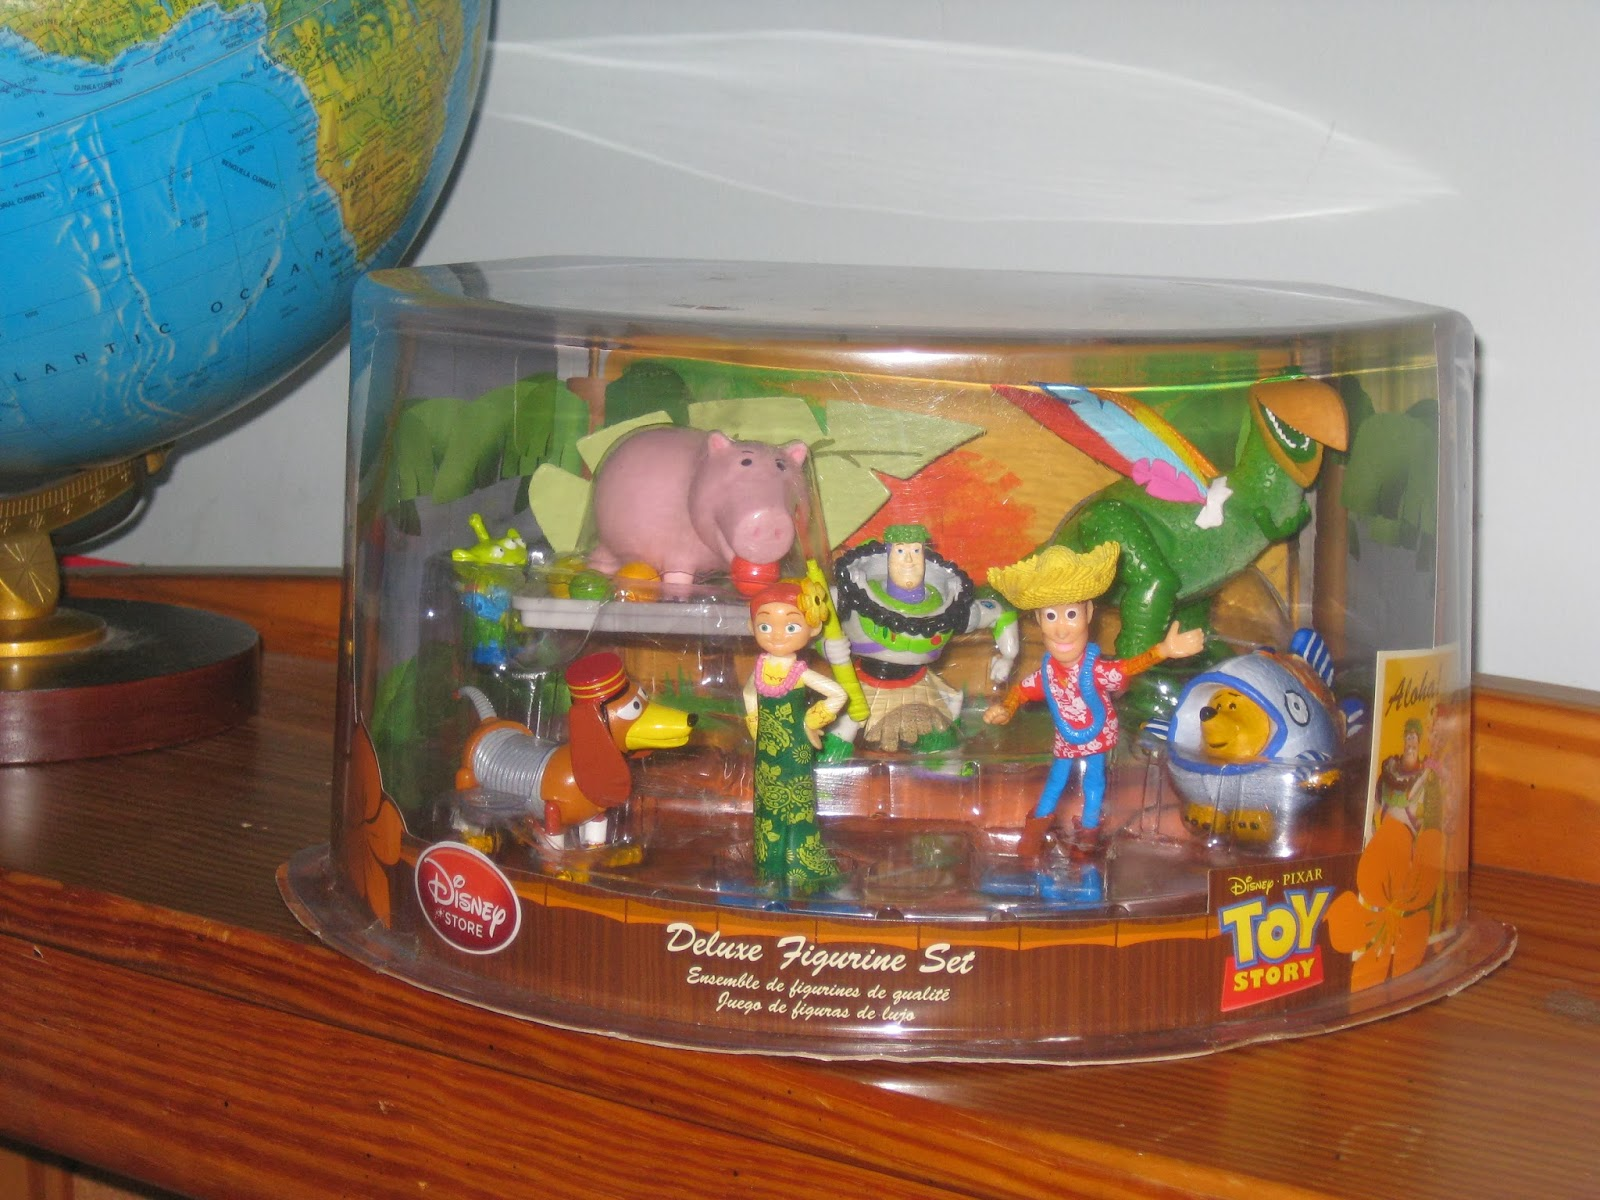 Toy Story Action Figures Set : Toy story capsule toy set from japan action figure set cu flickr